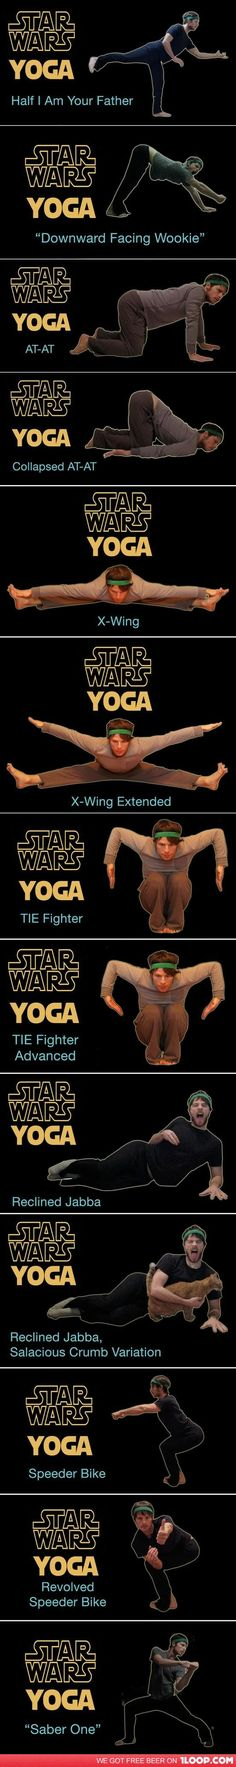 Star Wars Yoga :)